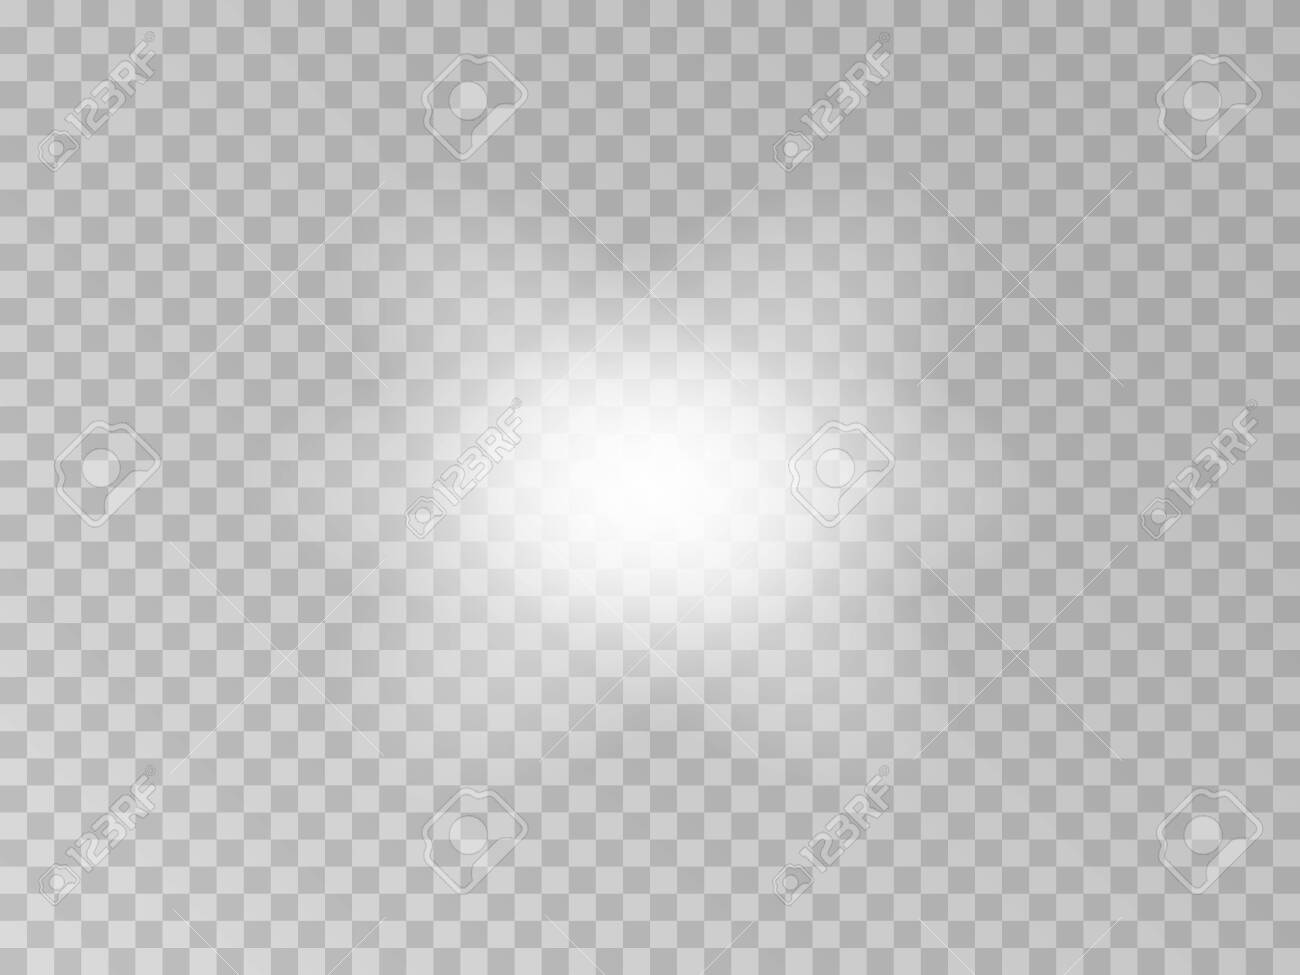 Vector Png Glowing Light Effect Shine Glare Flare Flash Illustration Royalty Free Cliparts Vectors And Stock Illustration Image 145416860 Blue stars shine, blue, shine png. vector png glowing light effect shine glare flare flash illustration